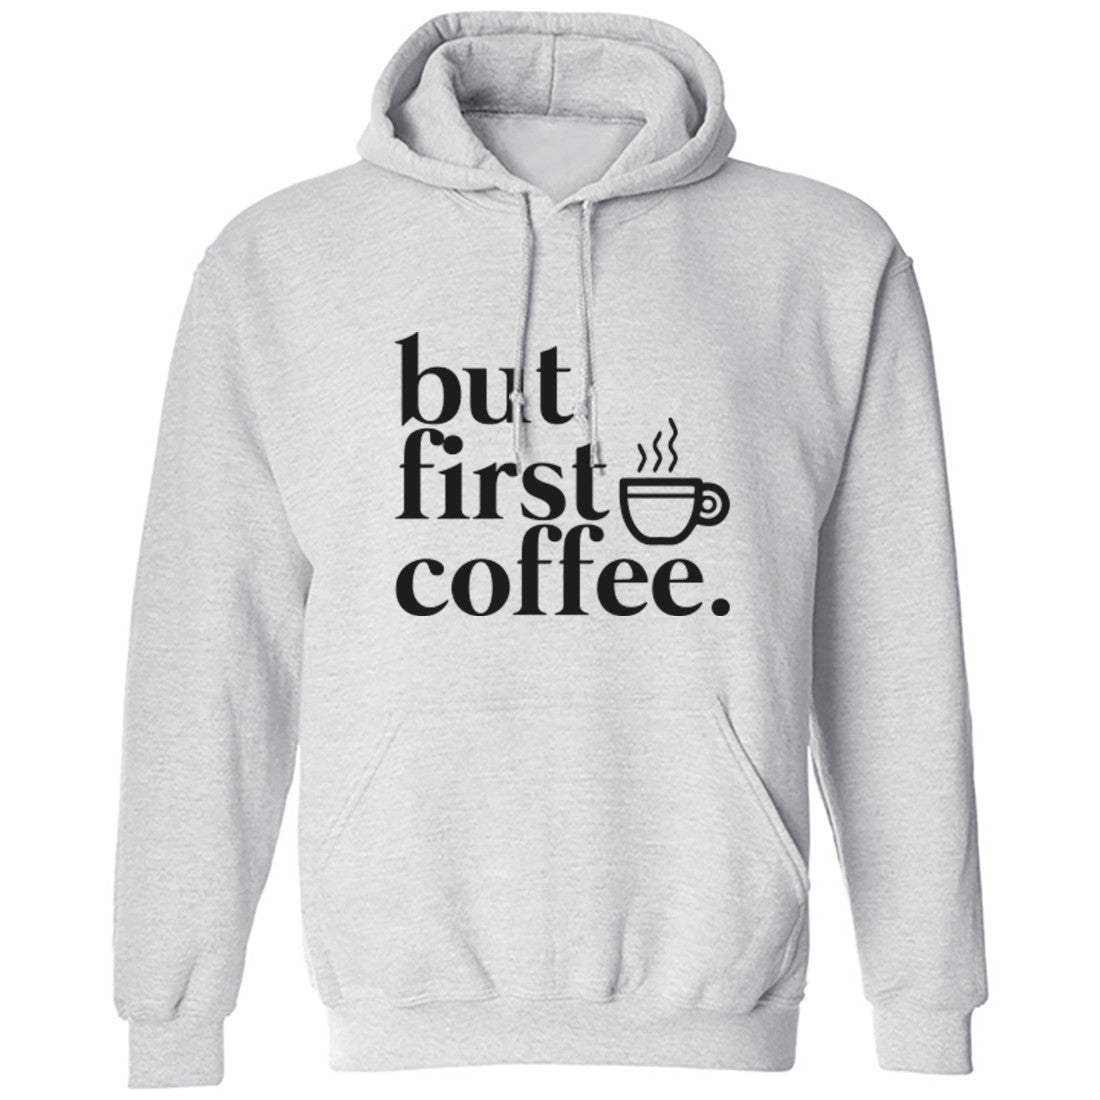 But First Coffee Unisex Hoodie K0002 - Illustrated Identity Ltd.